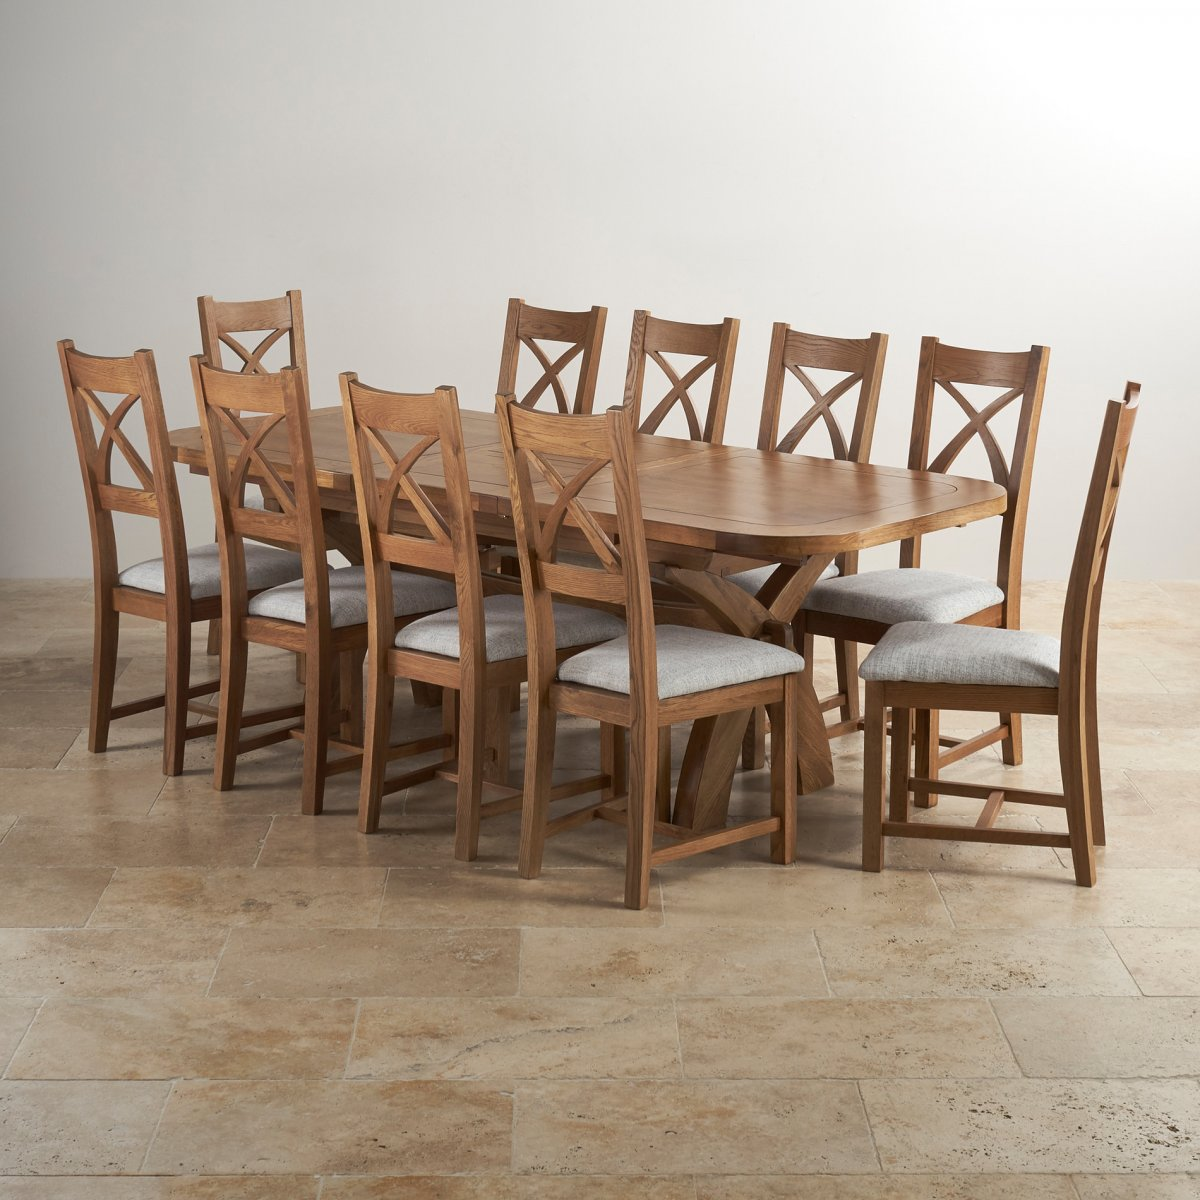 Hercules Dining Set in Rustic Oak Extending Table 10  : hercules 6ft rustic solid oak extending crossed leg dining table 10 cross back grey fabric chairs 58e64a775621df6a2e68ed316d8e767efc090736965a5 from www.oakfurnitureland.co.uk size 1200 x 1200 jpeg 198kB